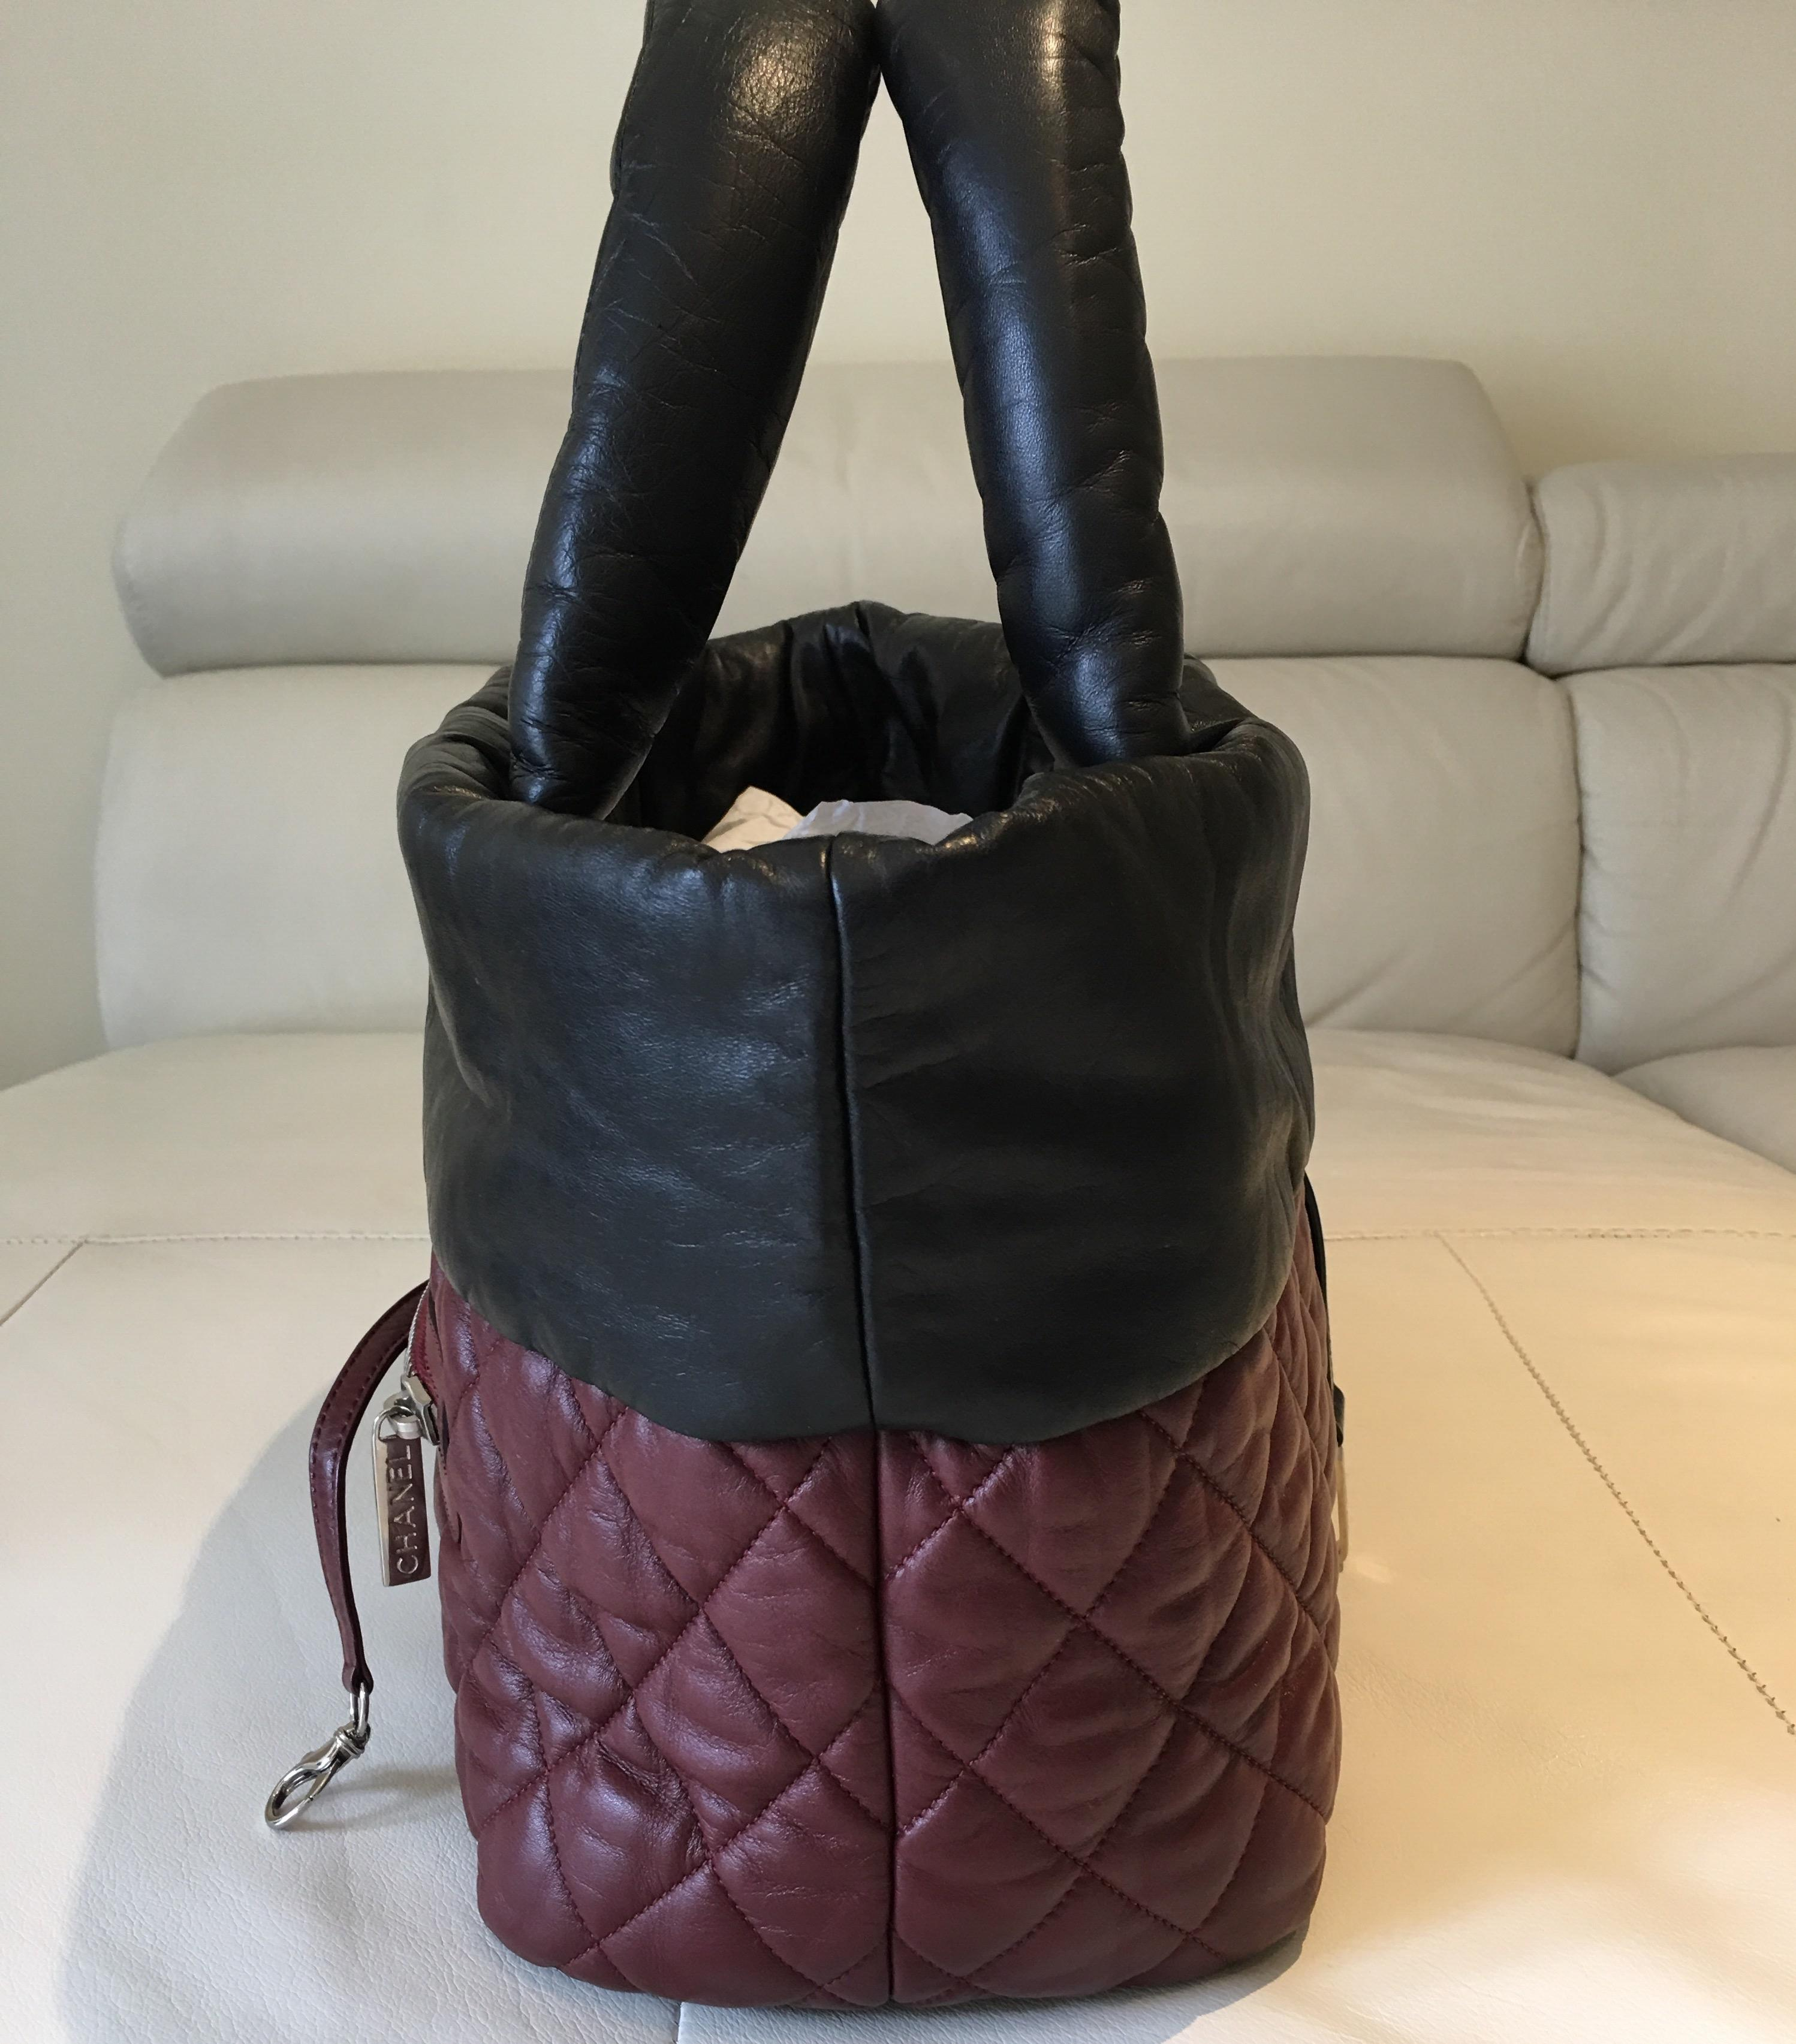 Chanel Leather Cocoon Reversible Black/Red Tote Bag | Totes on Sale